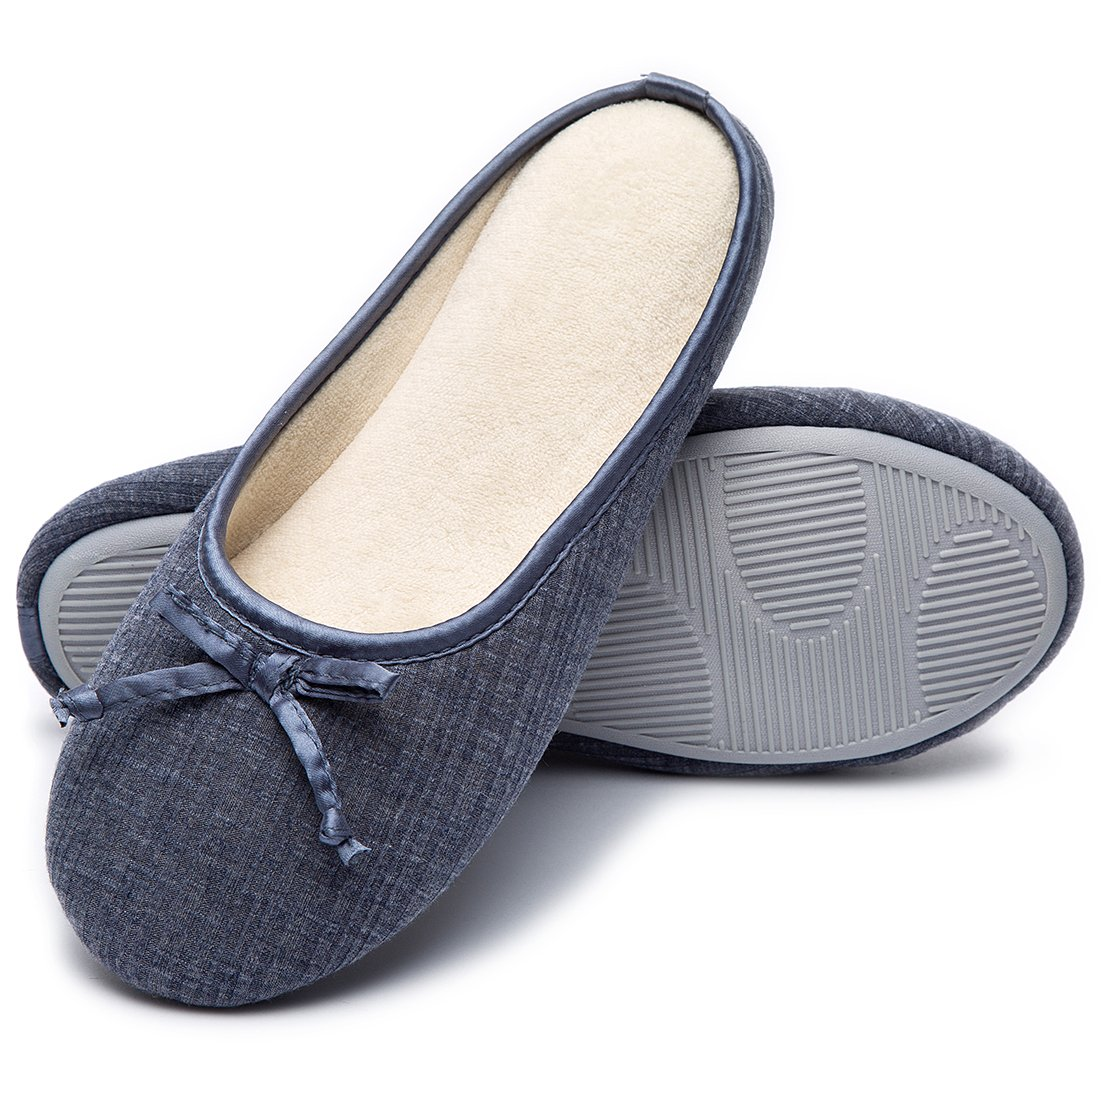 Cozy Niche Women's Closed Toe Knitted Stripe Memory Foam House Slippers With Cute Bow, Perfect For Spring and Summer (7-8 B(M) US, Navy Blue)